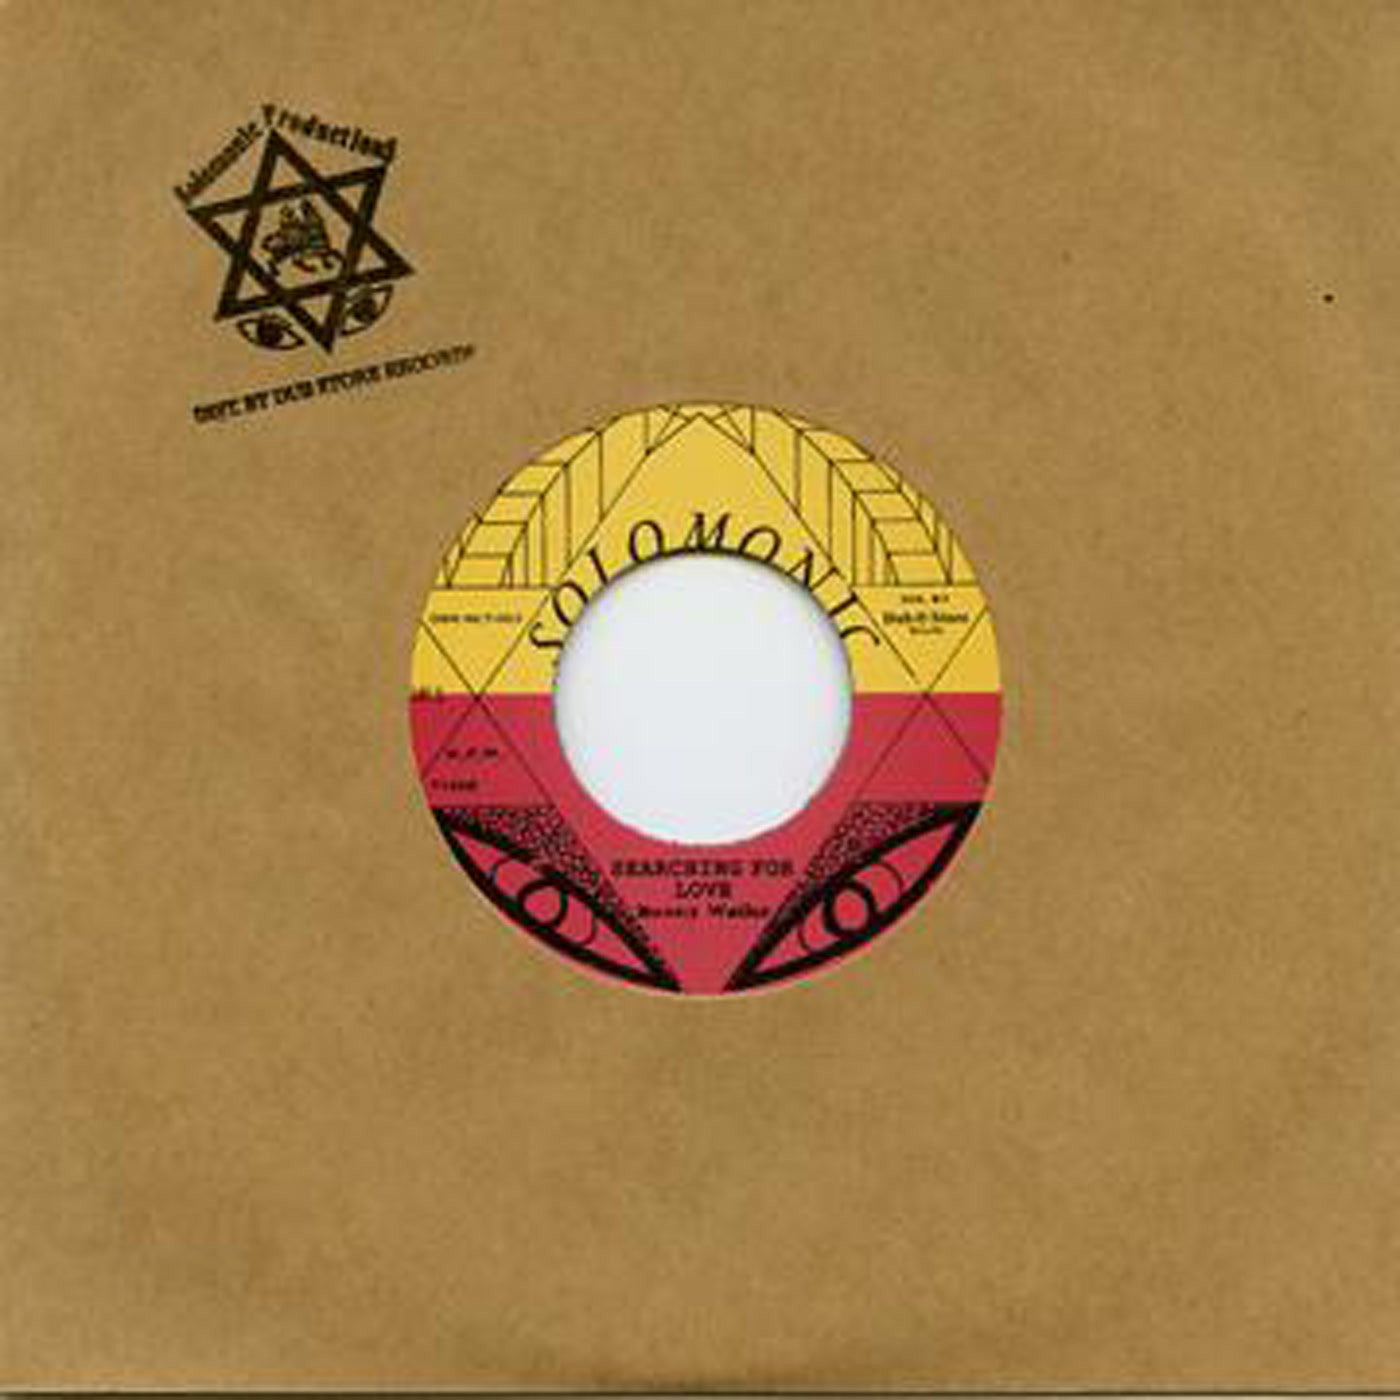 Bunny Wailer / Tuff Gong All Stars - Searching For Love / Must Skank , Vinyl - Dub Store Records, Unearthed Sounds